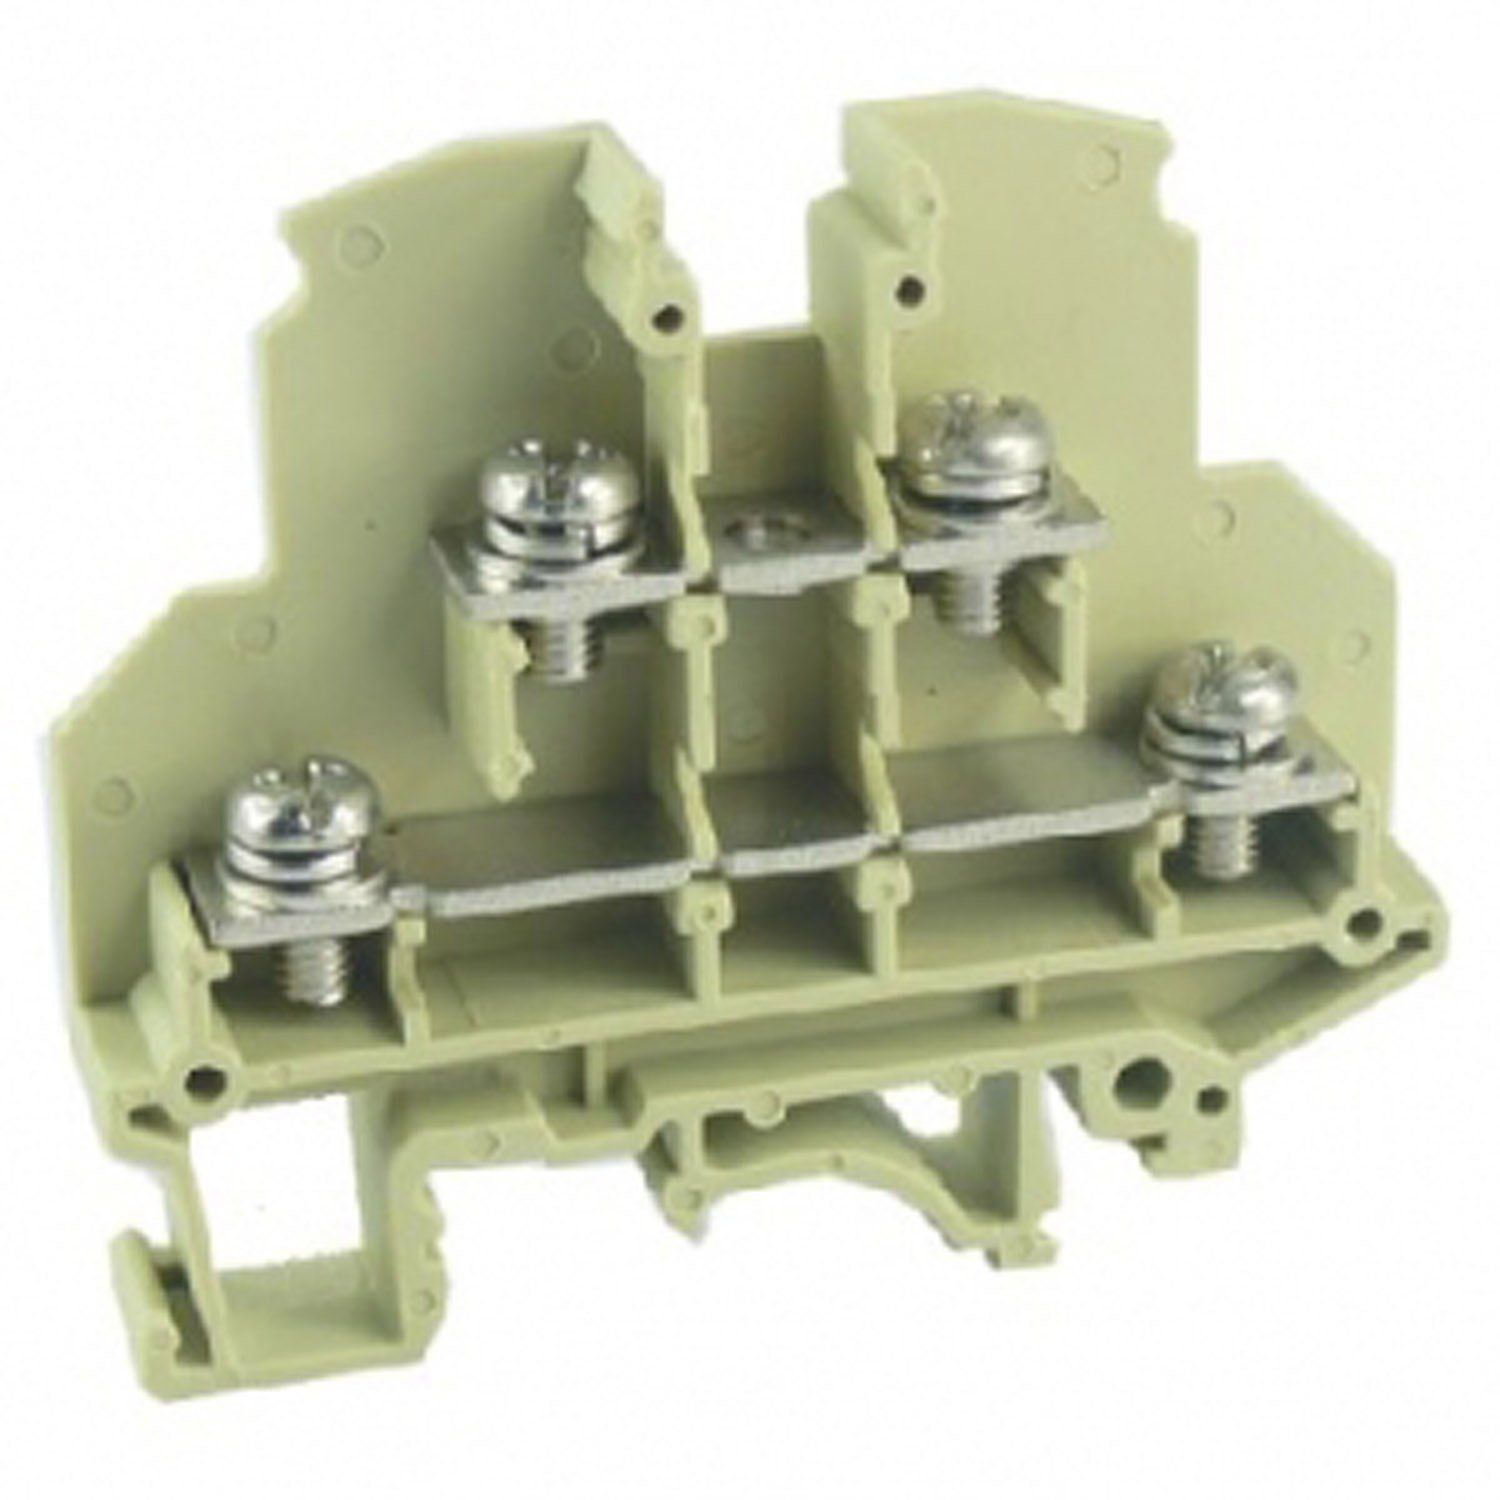 ASI ASI271014 Ring Lug DIN Rail Mounted Terminal Block, Double-Level, 9.2 mm Wide, 20 to 10 AWG, 30 Amp, 600V (Pack of 60)